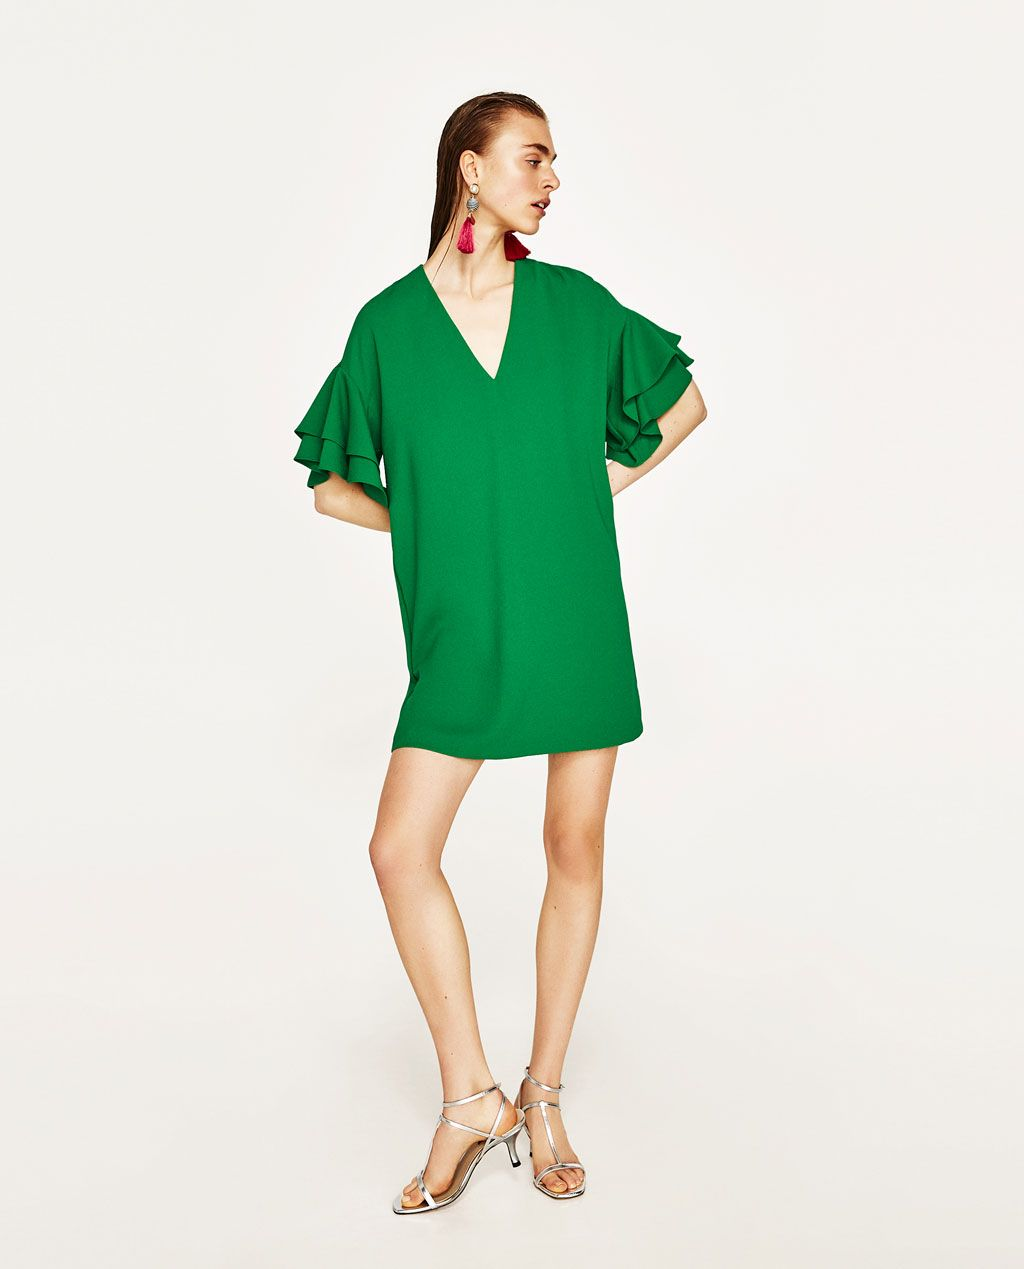 FRILLED-SLEEVE DRESS-View All-DRESSES-WOMAN   ZARA United States ... 4e32ed54ba4